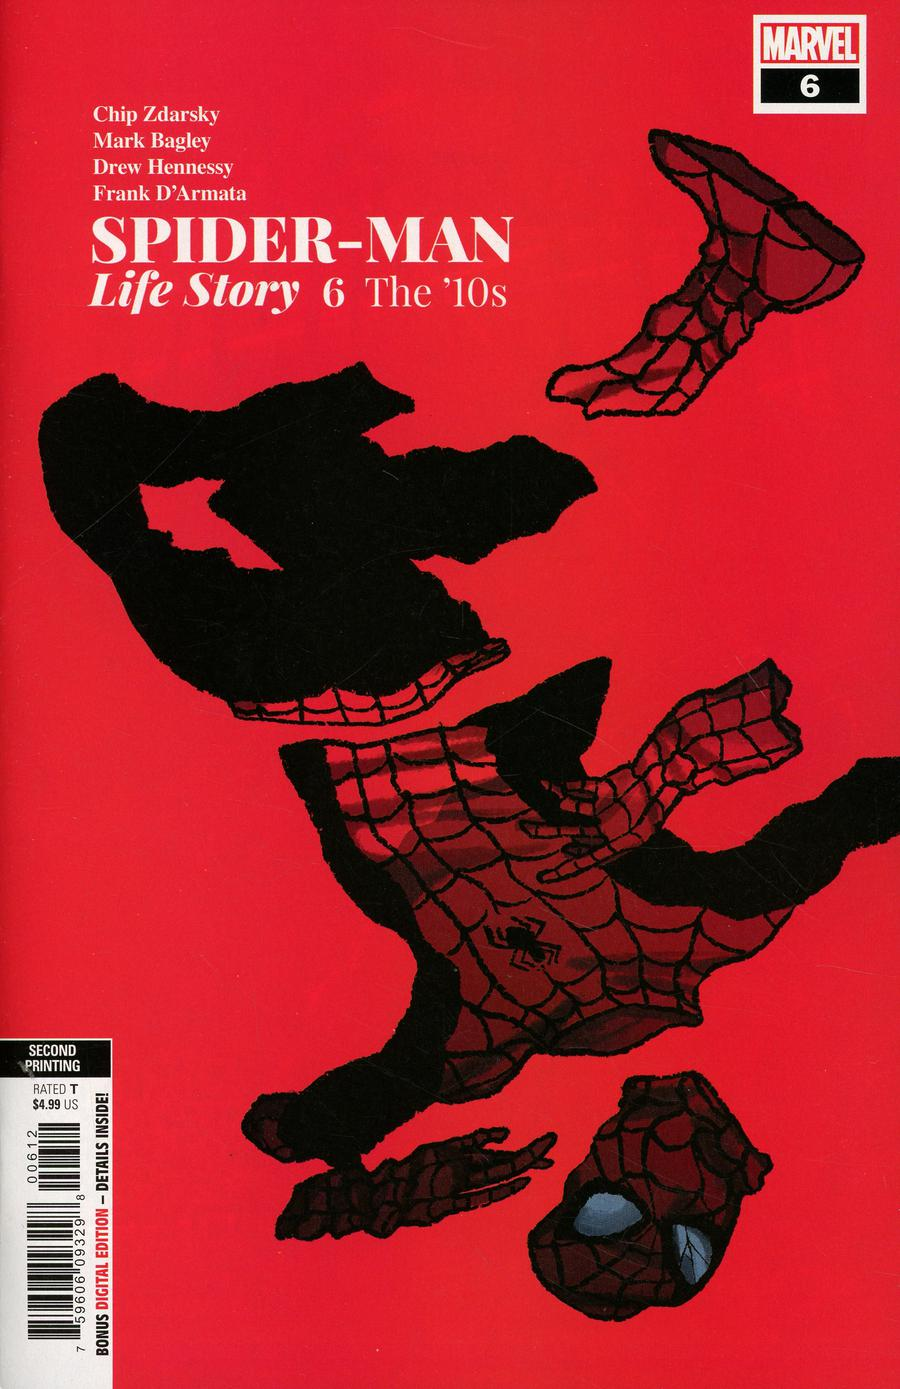 Spider-Man Life Story #6 Cover C 2nd Ptg Variant Chip Zdarsky Cover